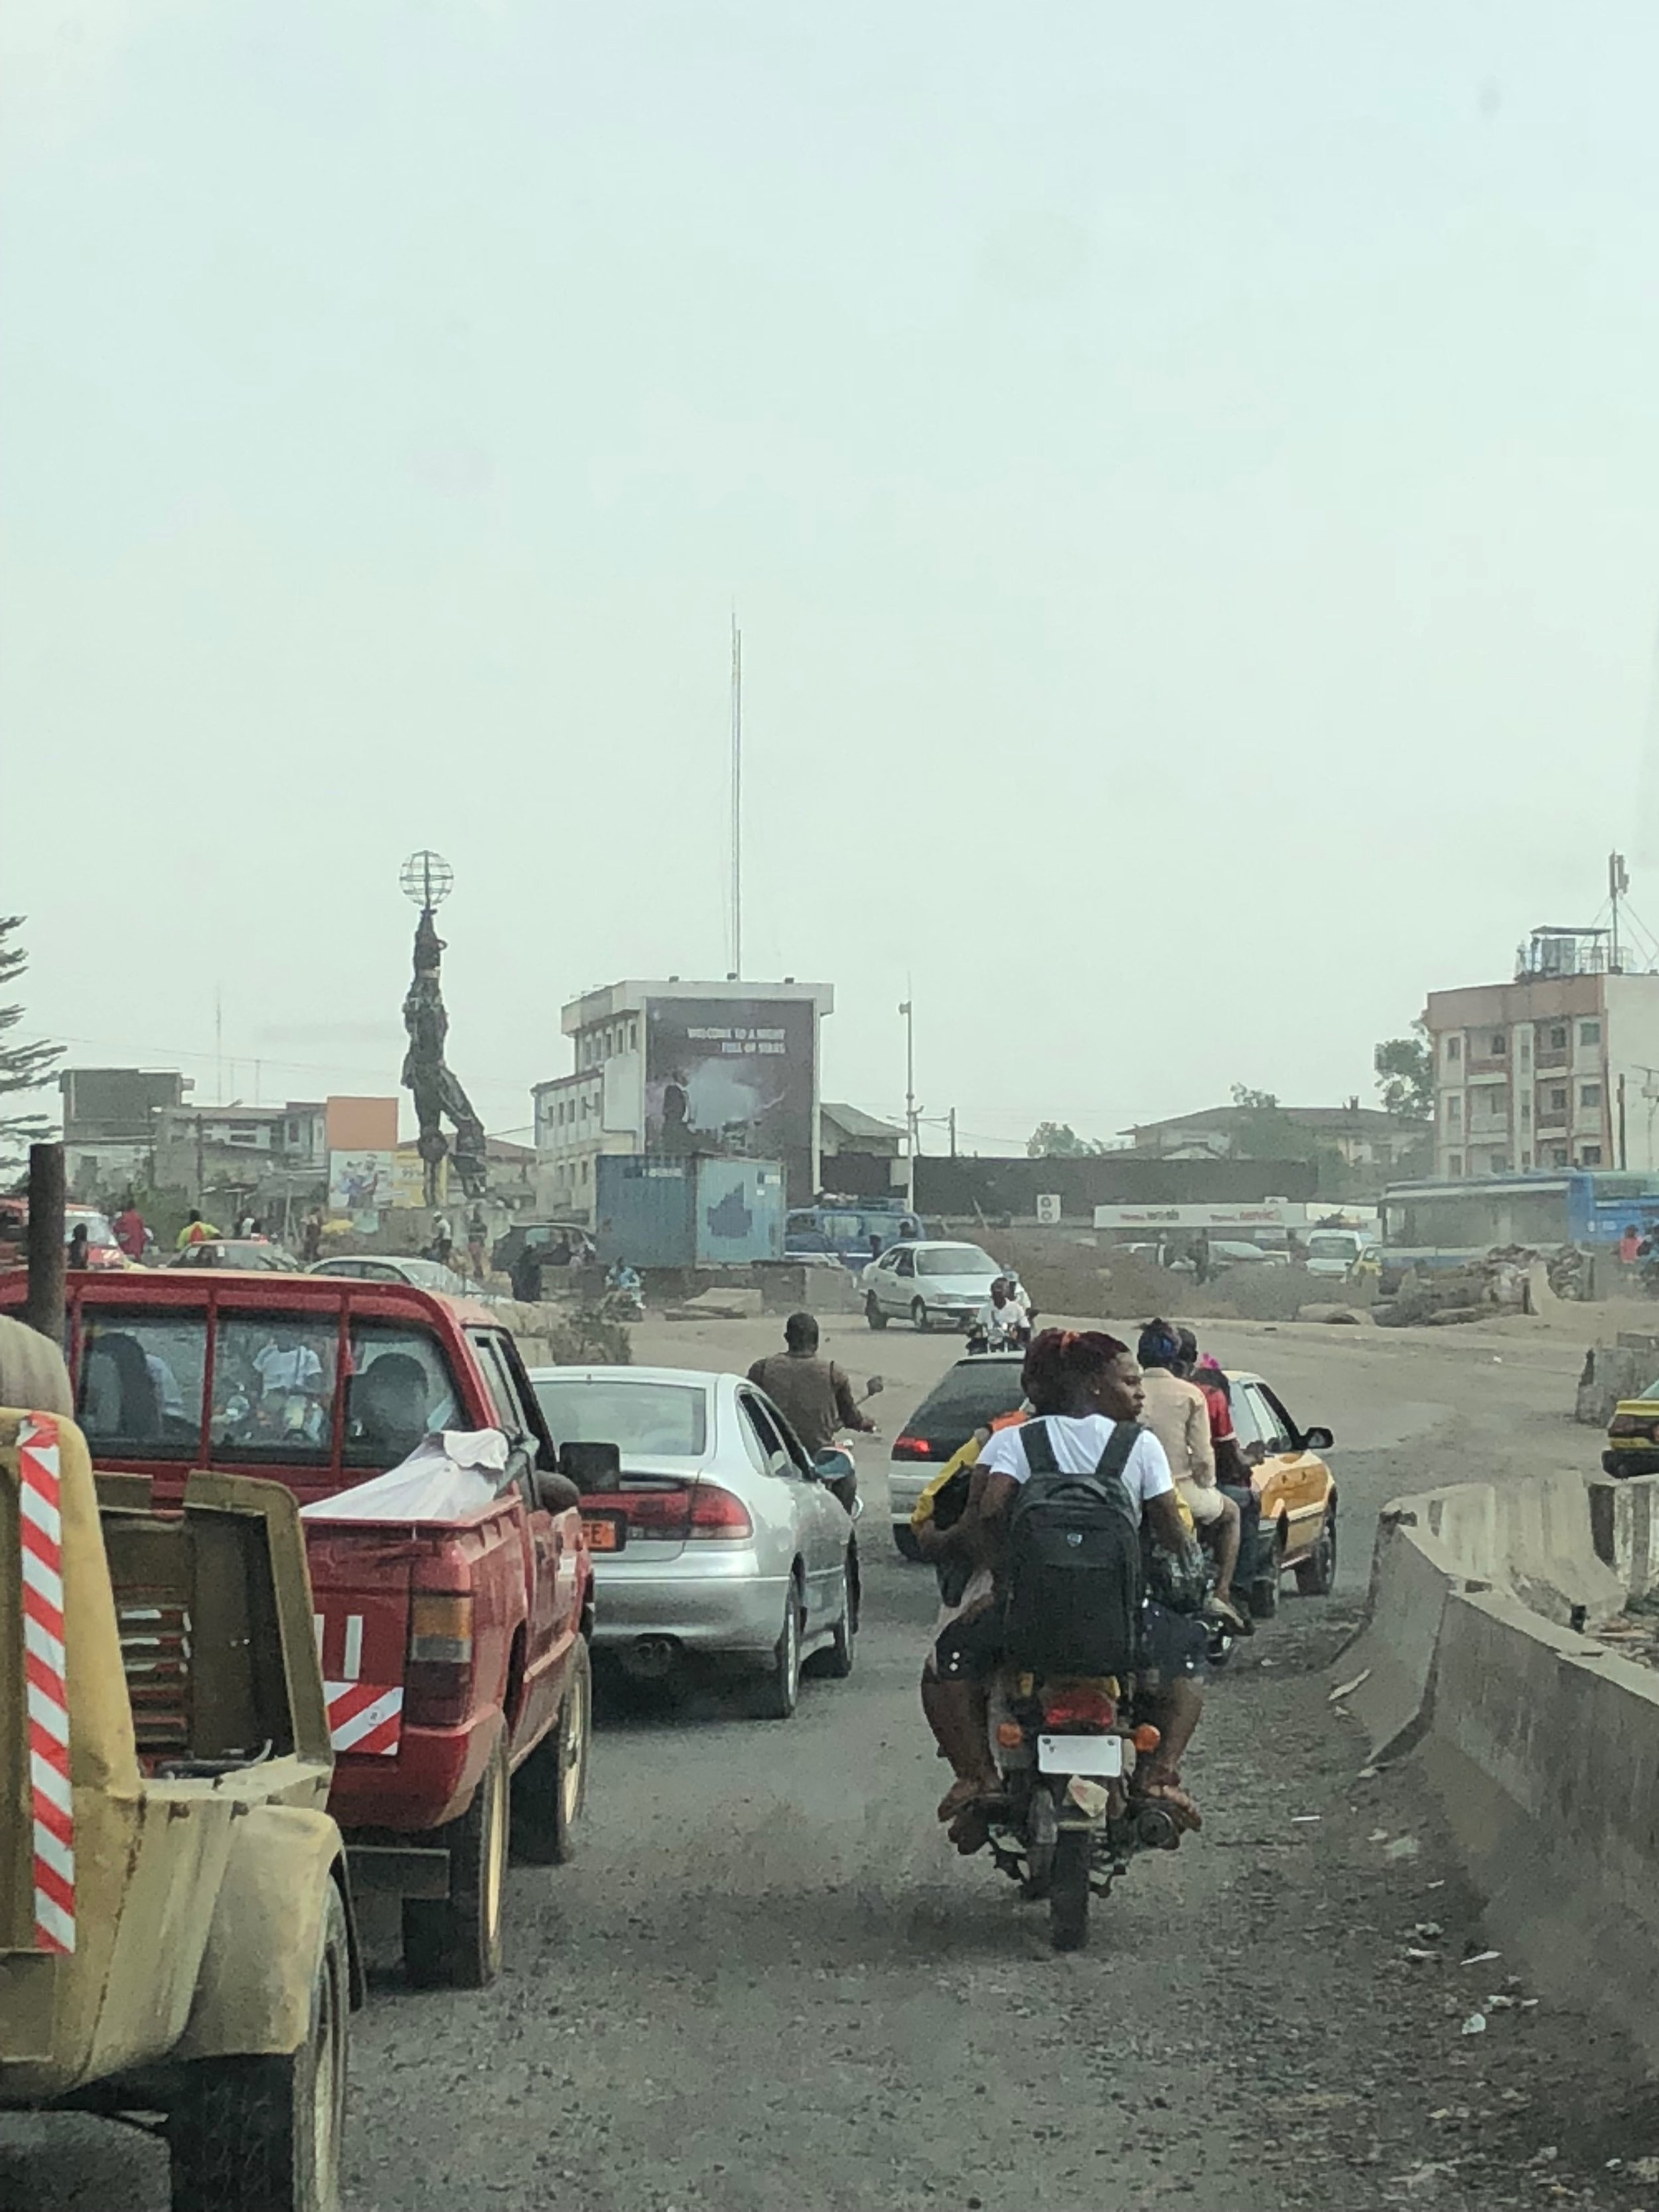 New Bonaberi Bridge, Douala. It's still under construction and traffic is horrendous during peak hours and on weekends.